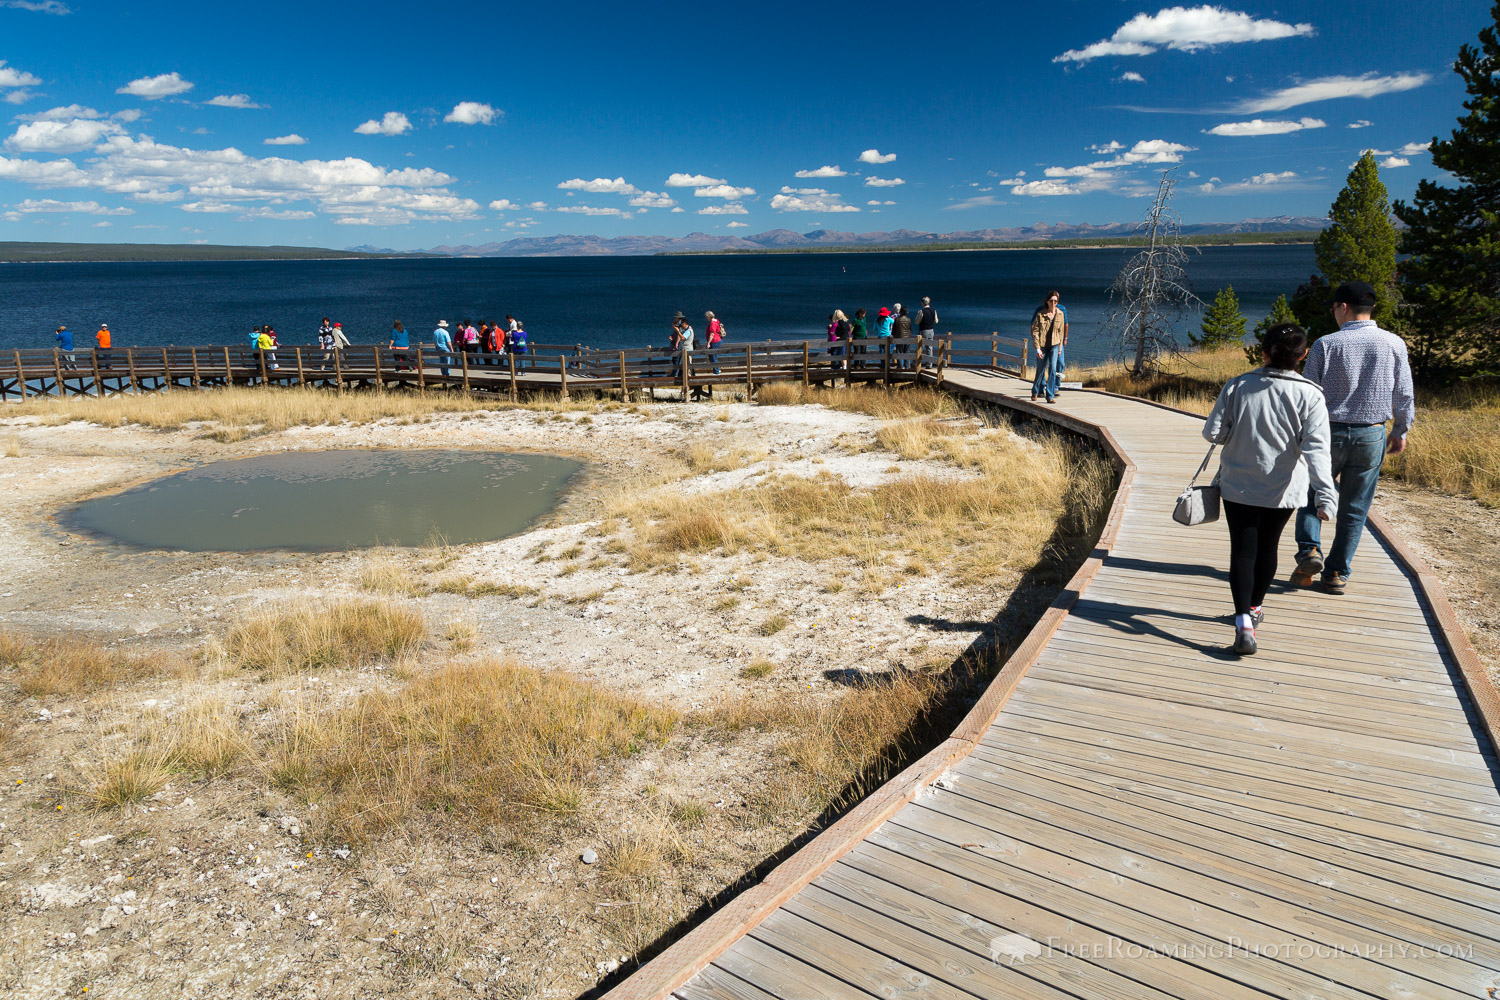 People on Yellowstone Boardwalk